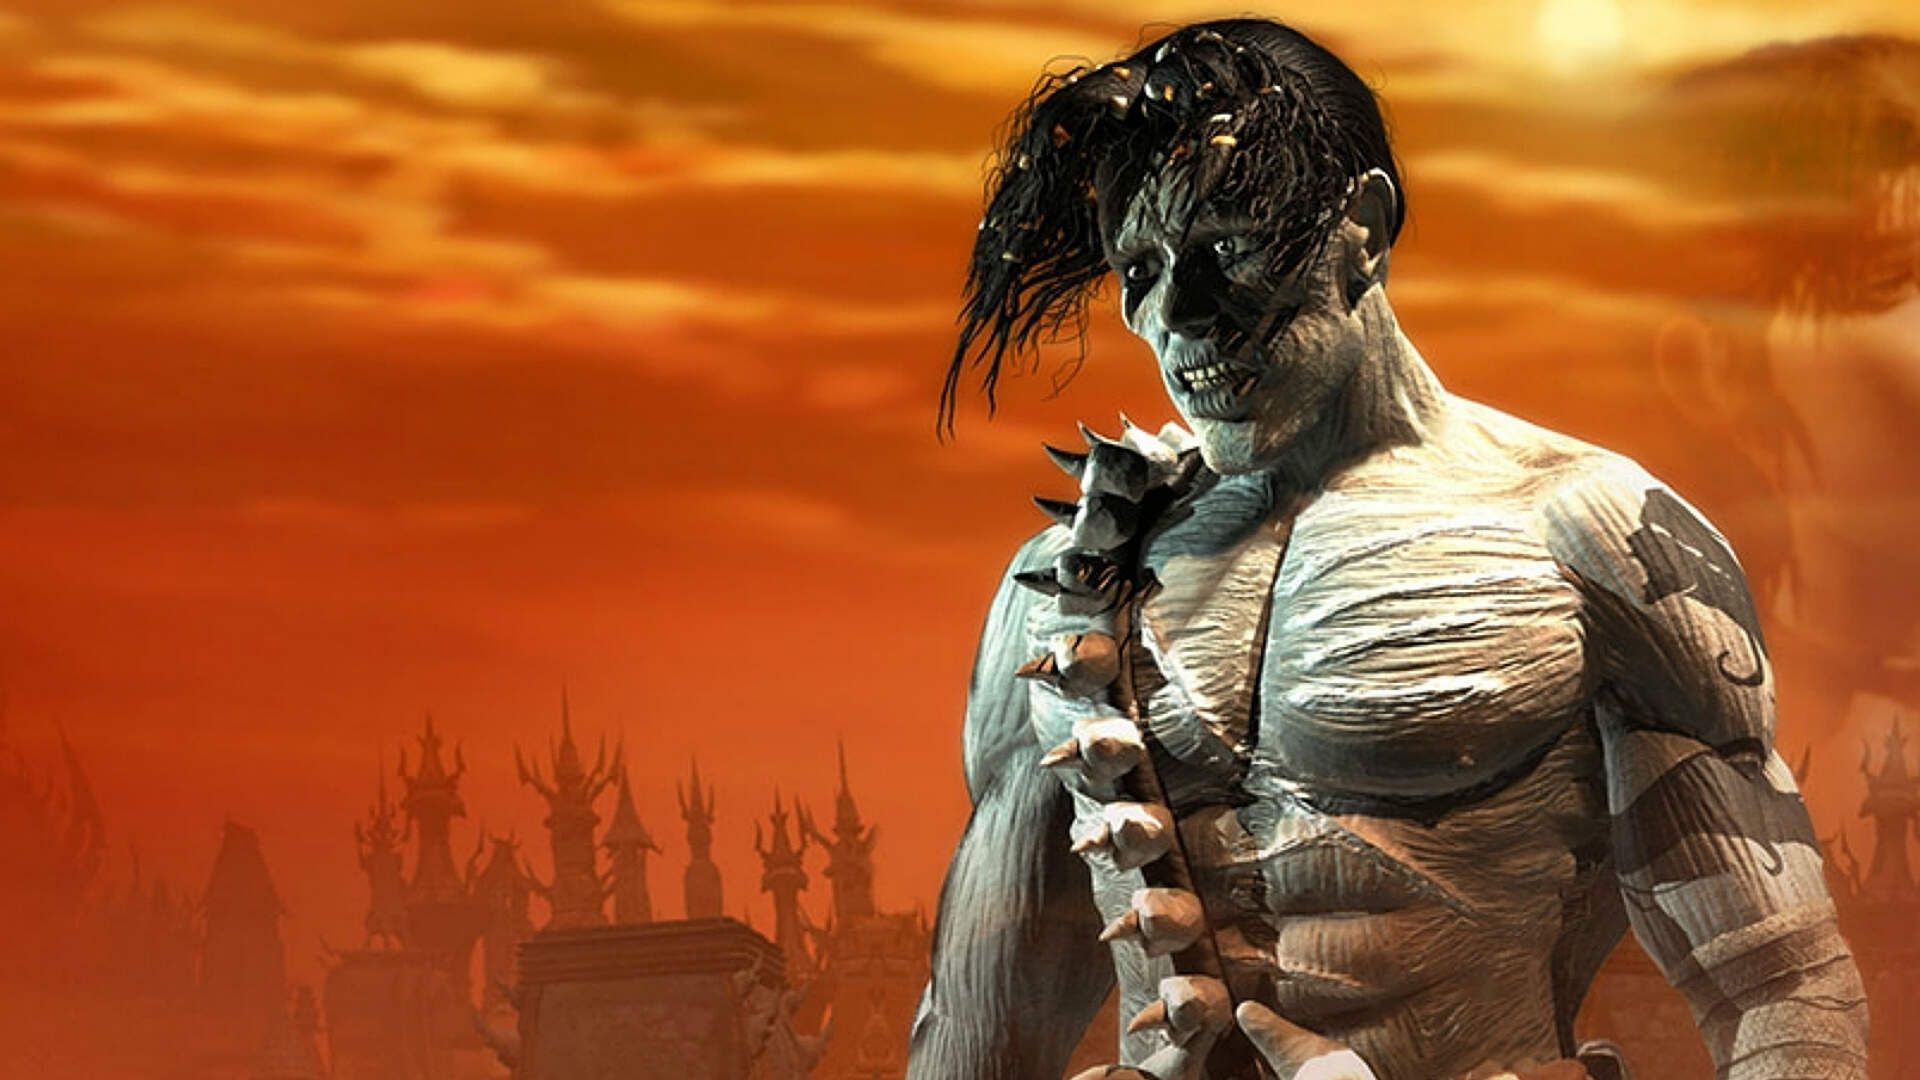 The Top 25 RPGs of All Time #2: Planescape: Torment